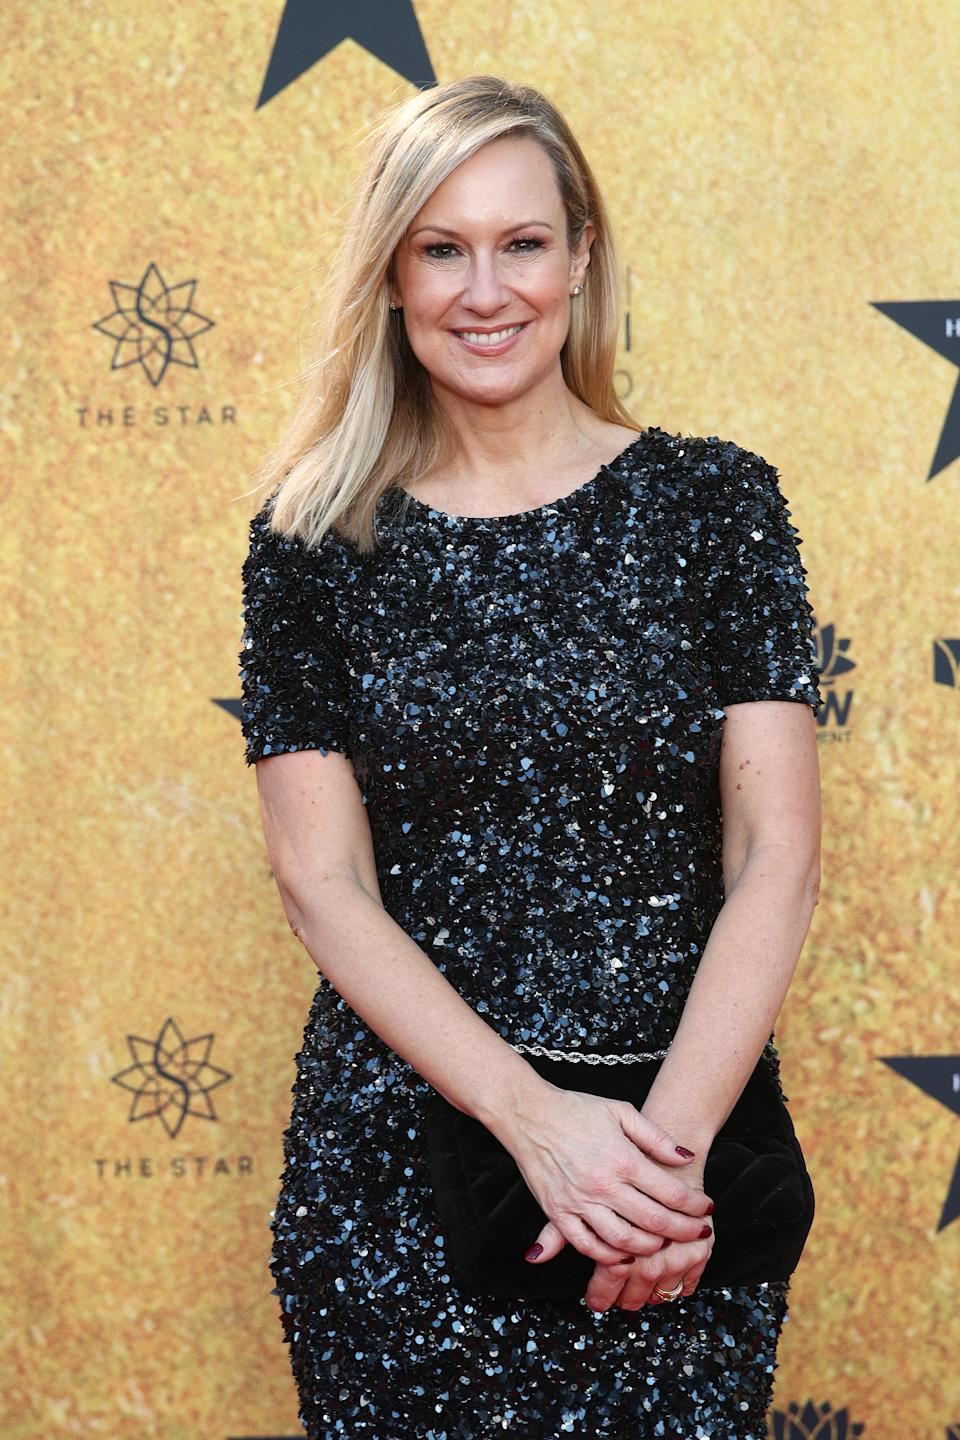 Melissa Doyle wearing a black sparkly dress at the Australian premiere of Hamilton at Lyric Theatre, Star City on March 27, 2021 in Sydney, Australia